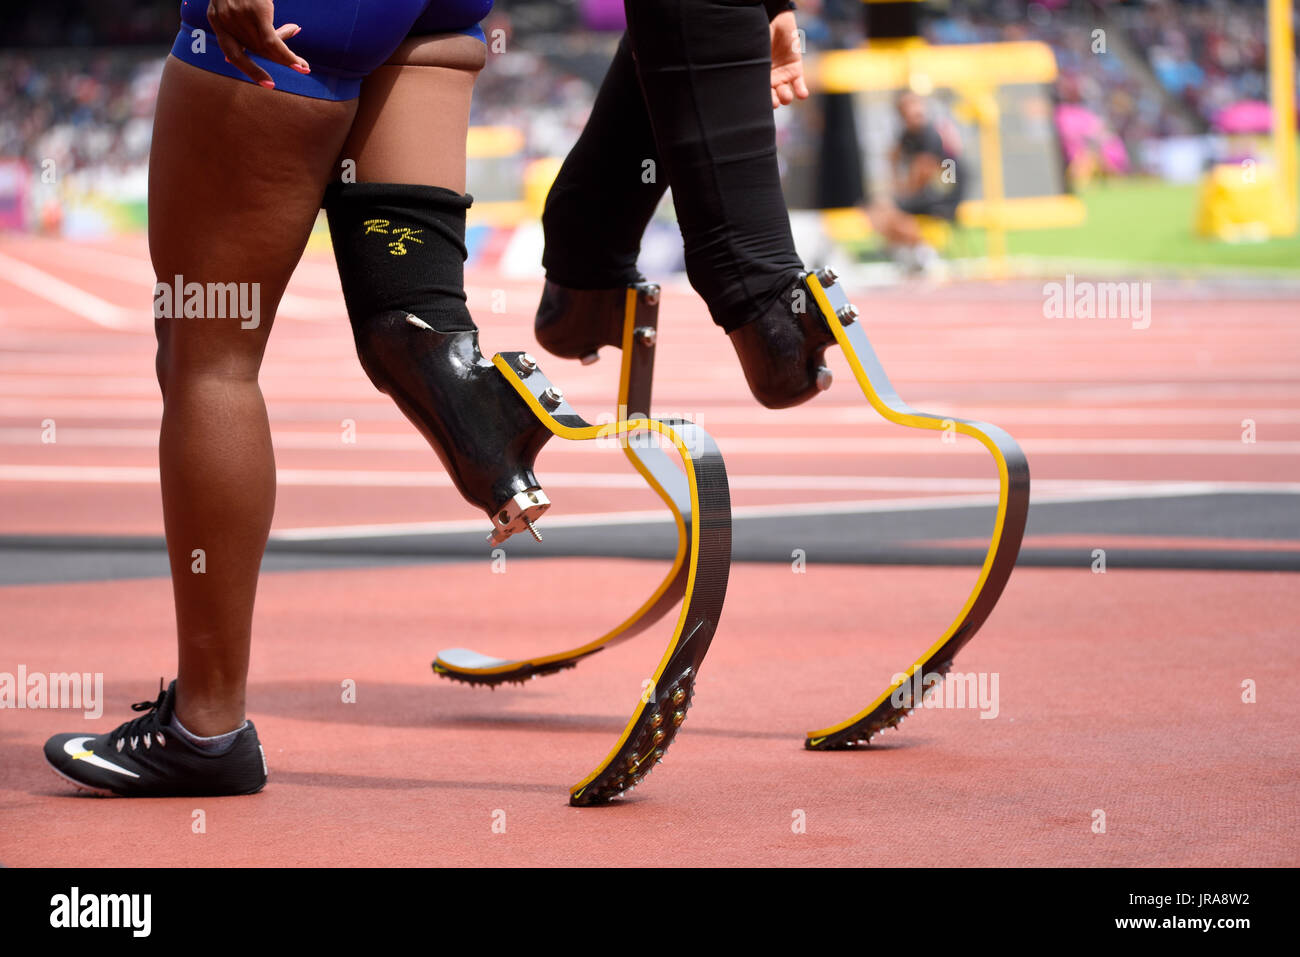 Running blades flex feet with spikes of runners competing in the T44 200m at the World Para Athletics Championships, London Stadium. Space for copy - Stock Image